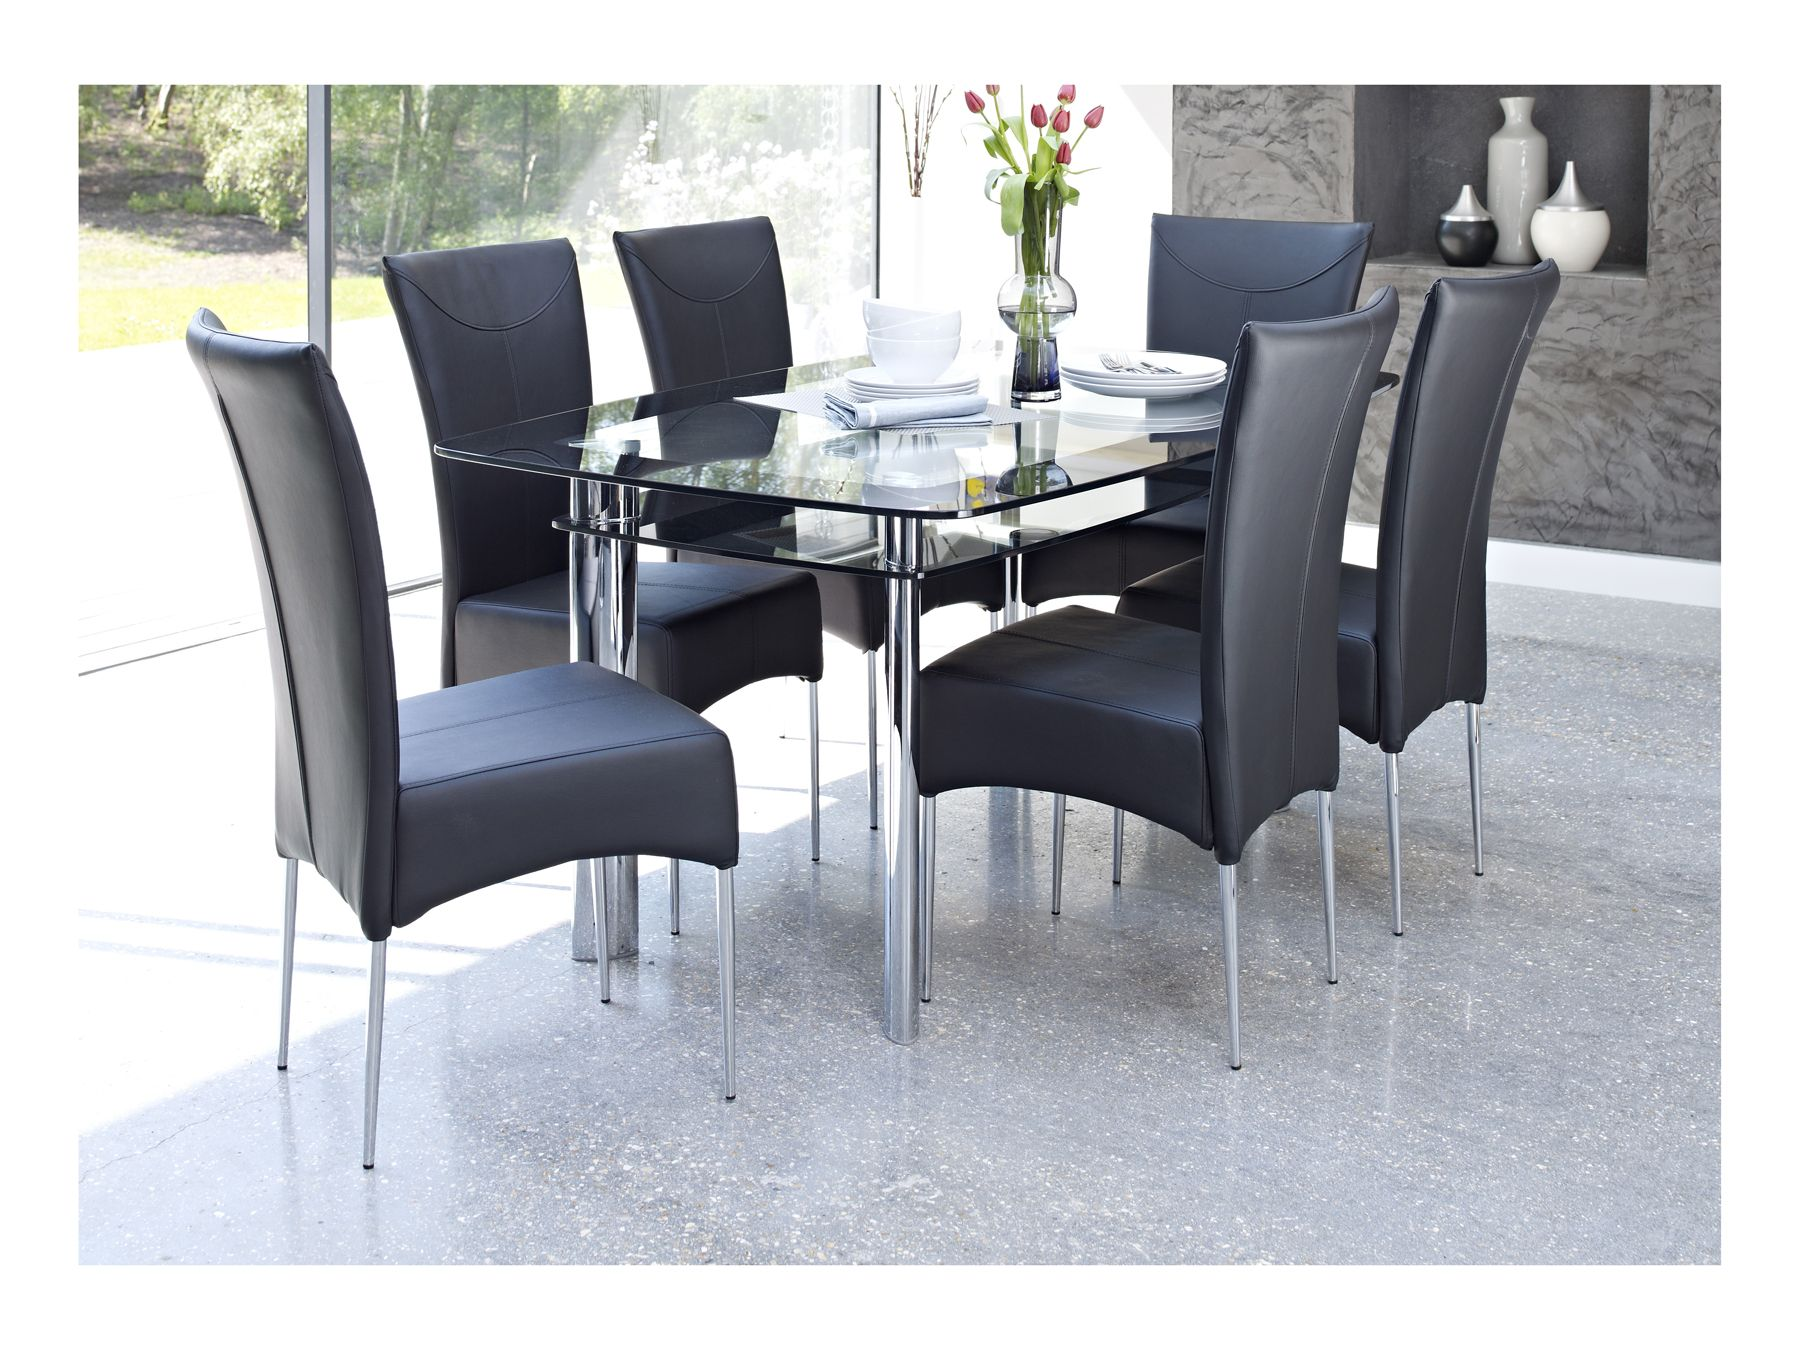 Glass dining table with black chairs whatever for Dining room table for 2